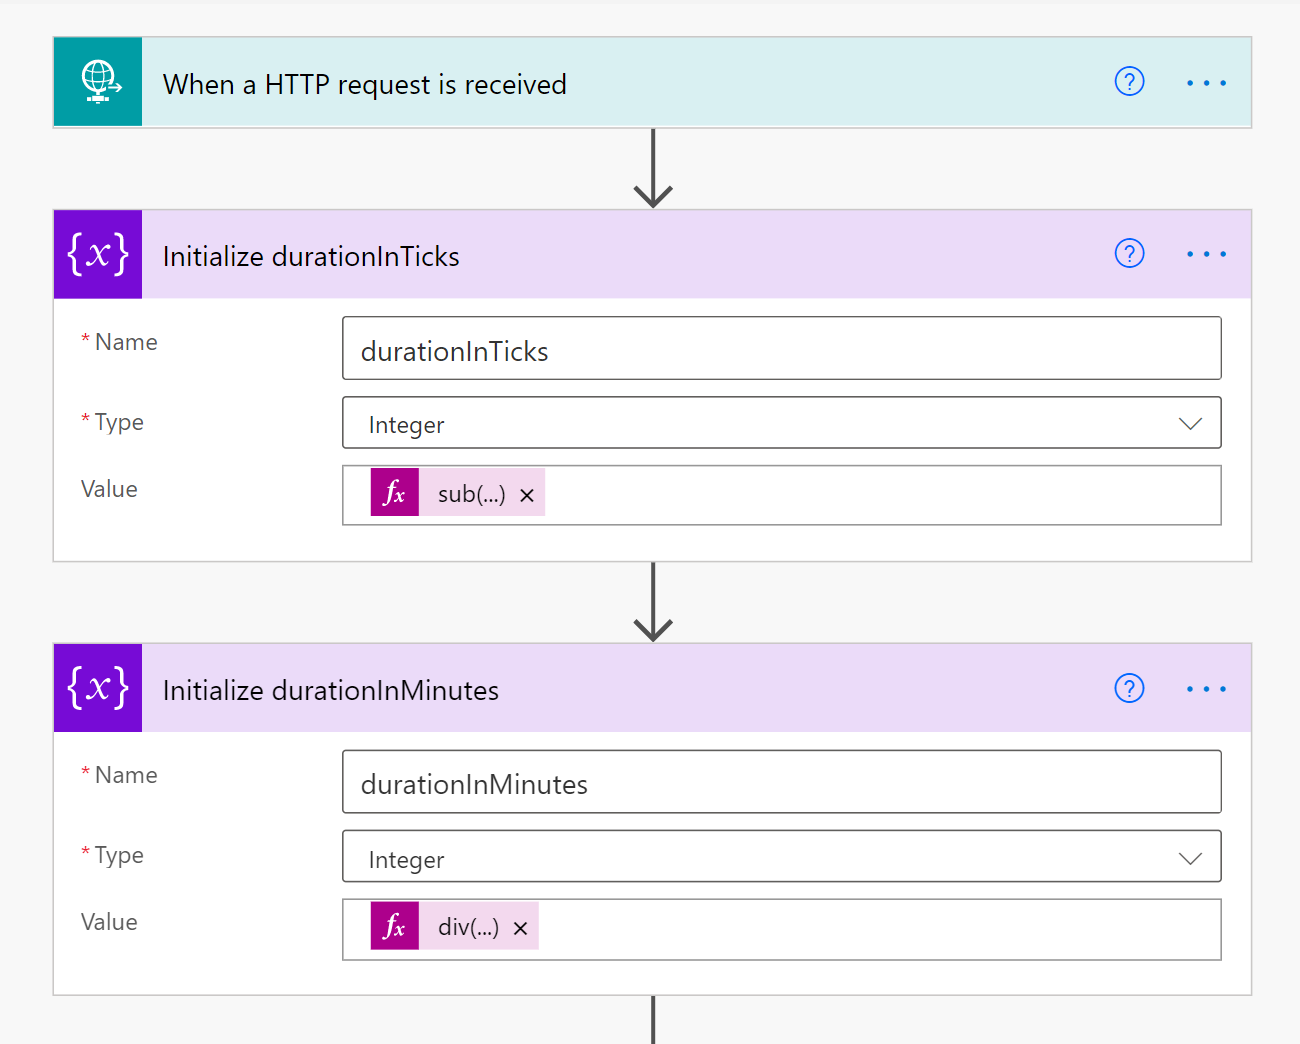 shows durationinminutes and duratiointicks forms in Dataverse.